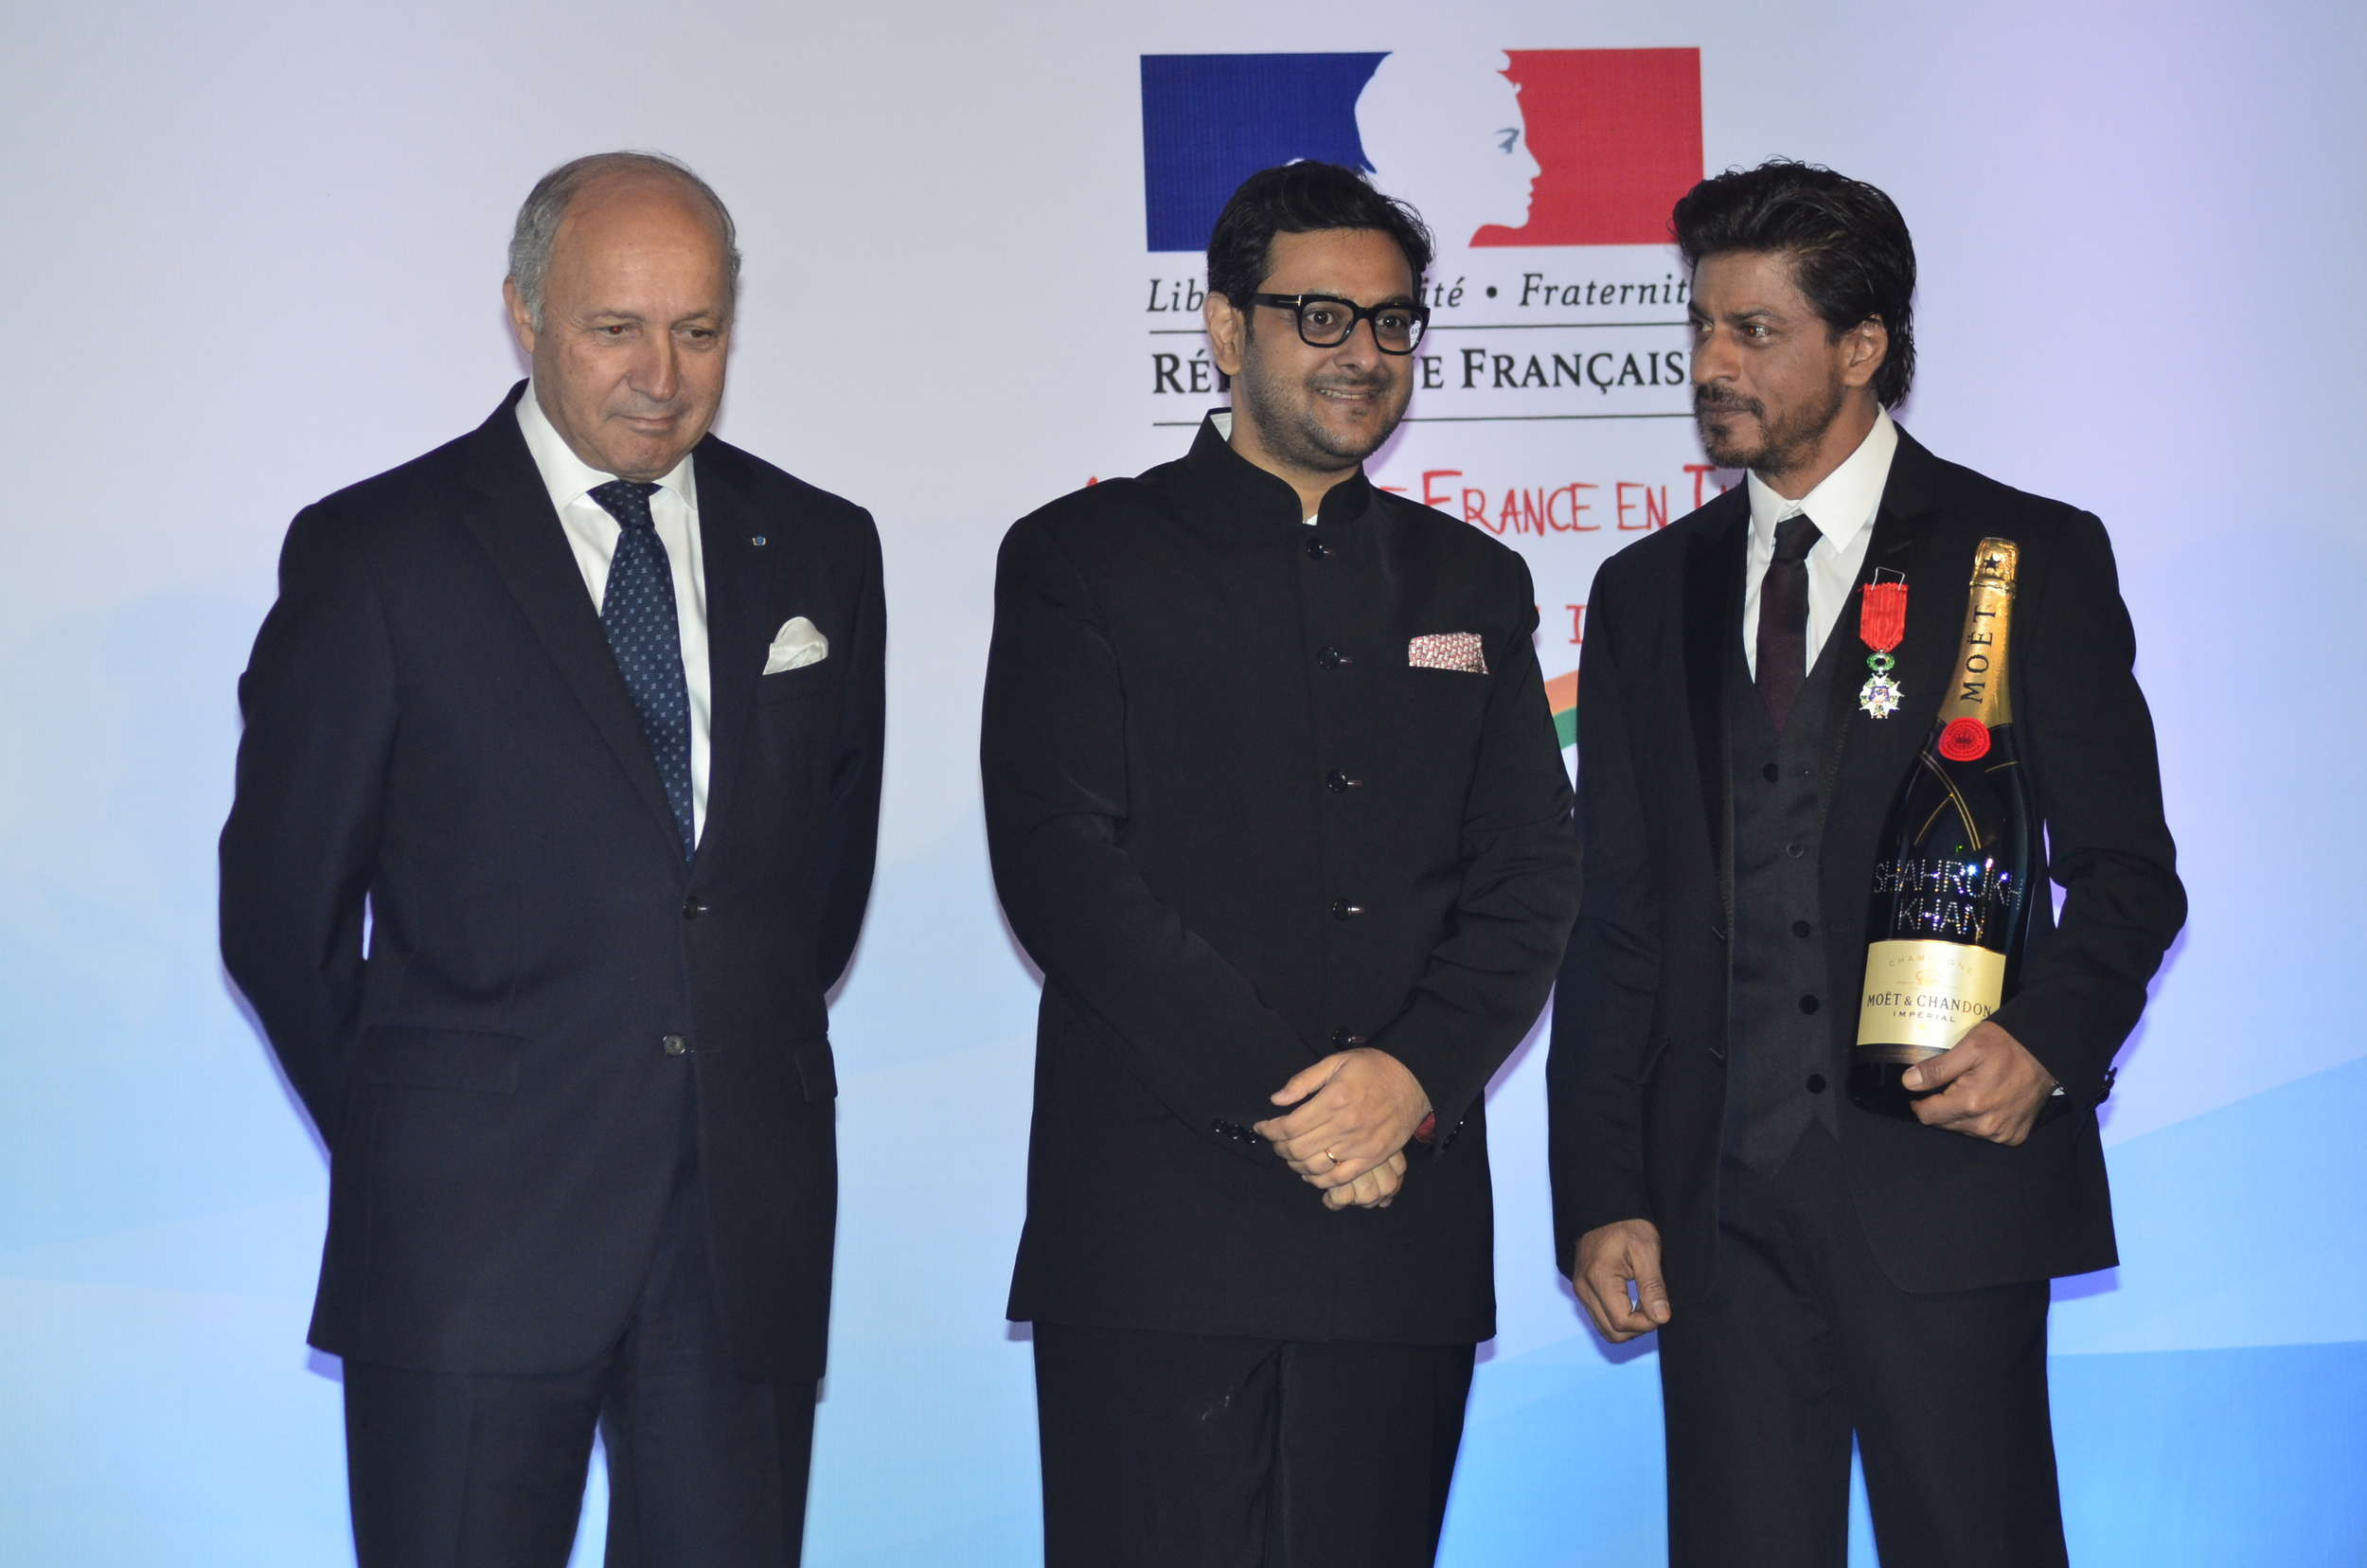 Mr. Laurent Fabius, French Minister of Foreign Affairs and International Development, Gaurav Bhatia, Marketing Director, Moet Hennessy India and Shah Rukh Khan